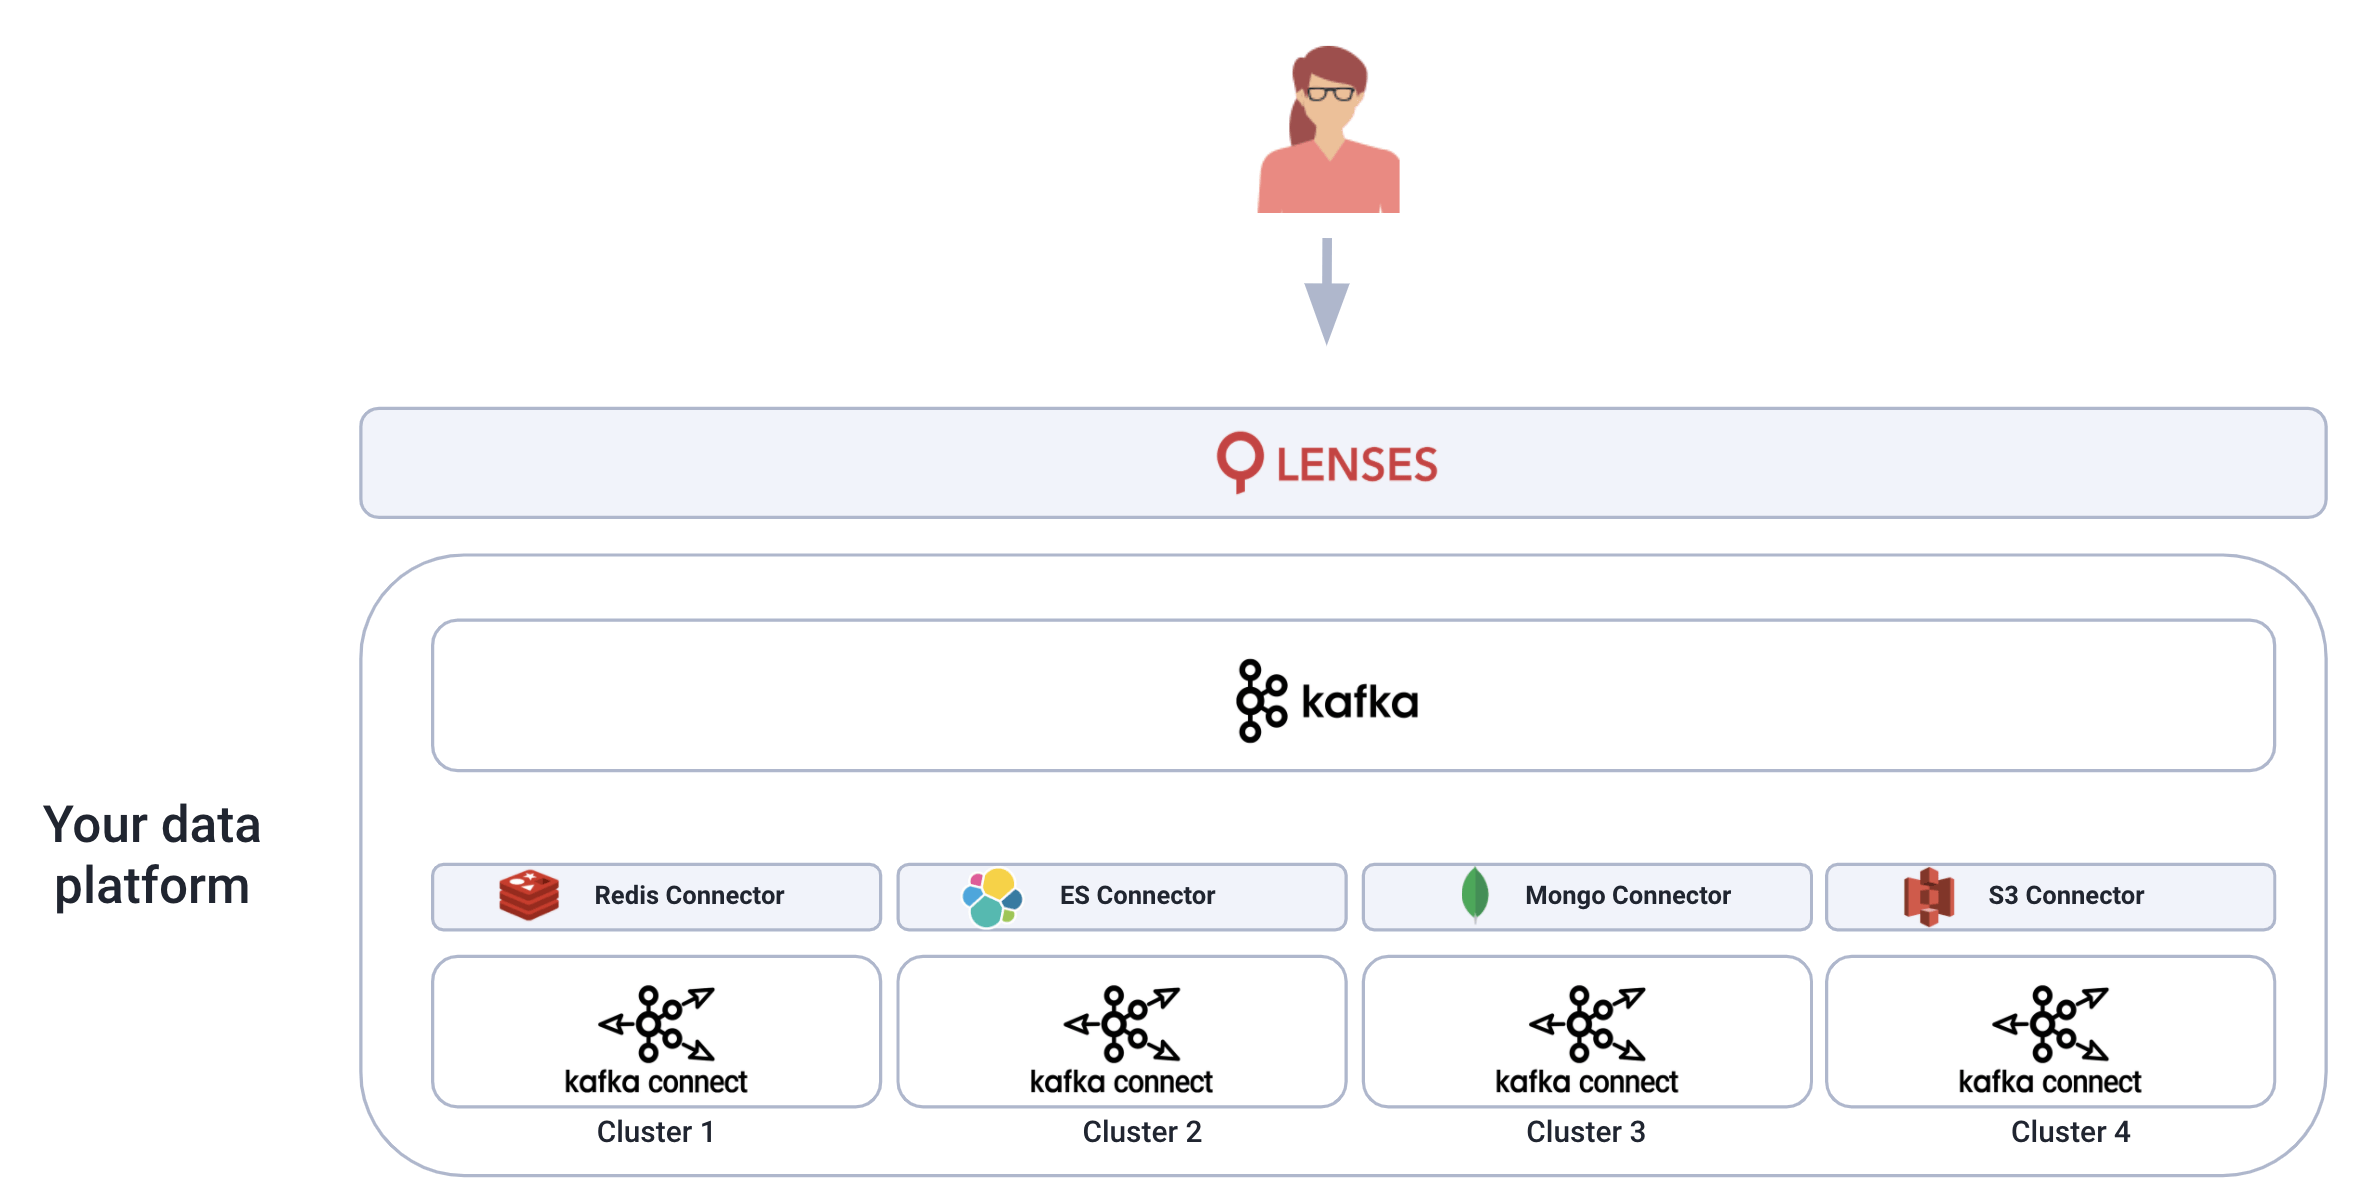 lenses.io Apach kafka connect connector isolation